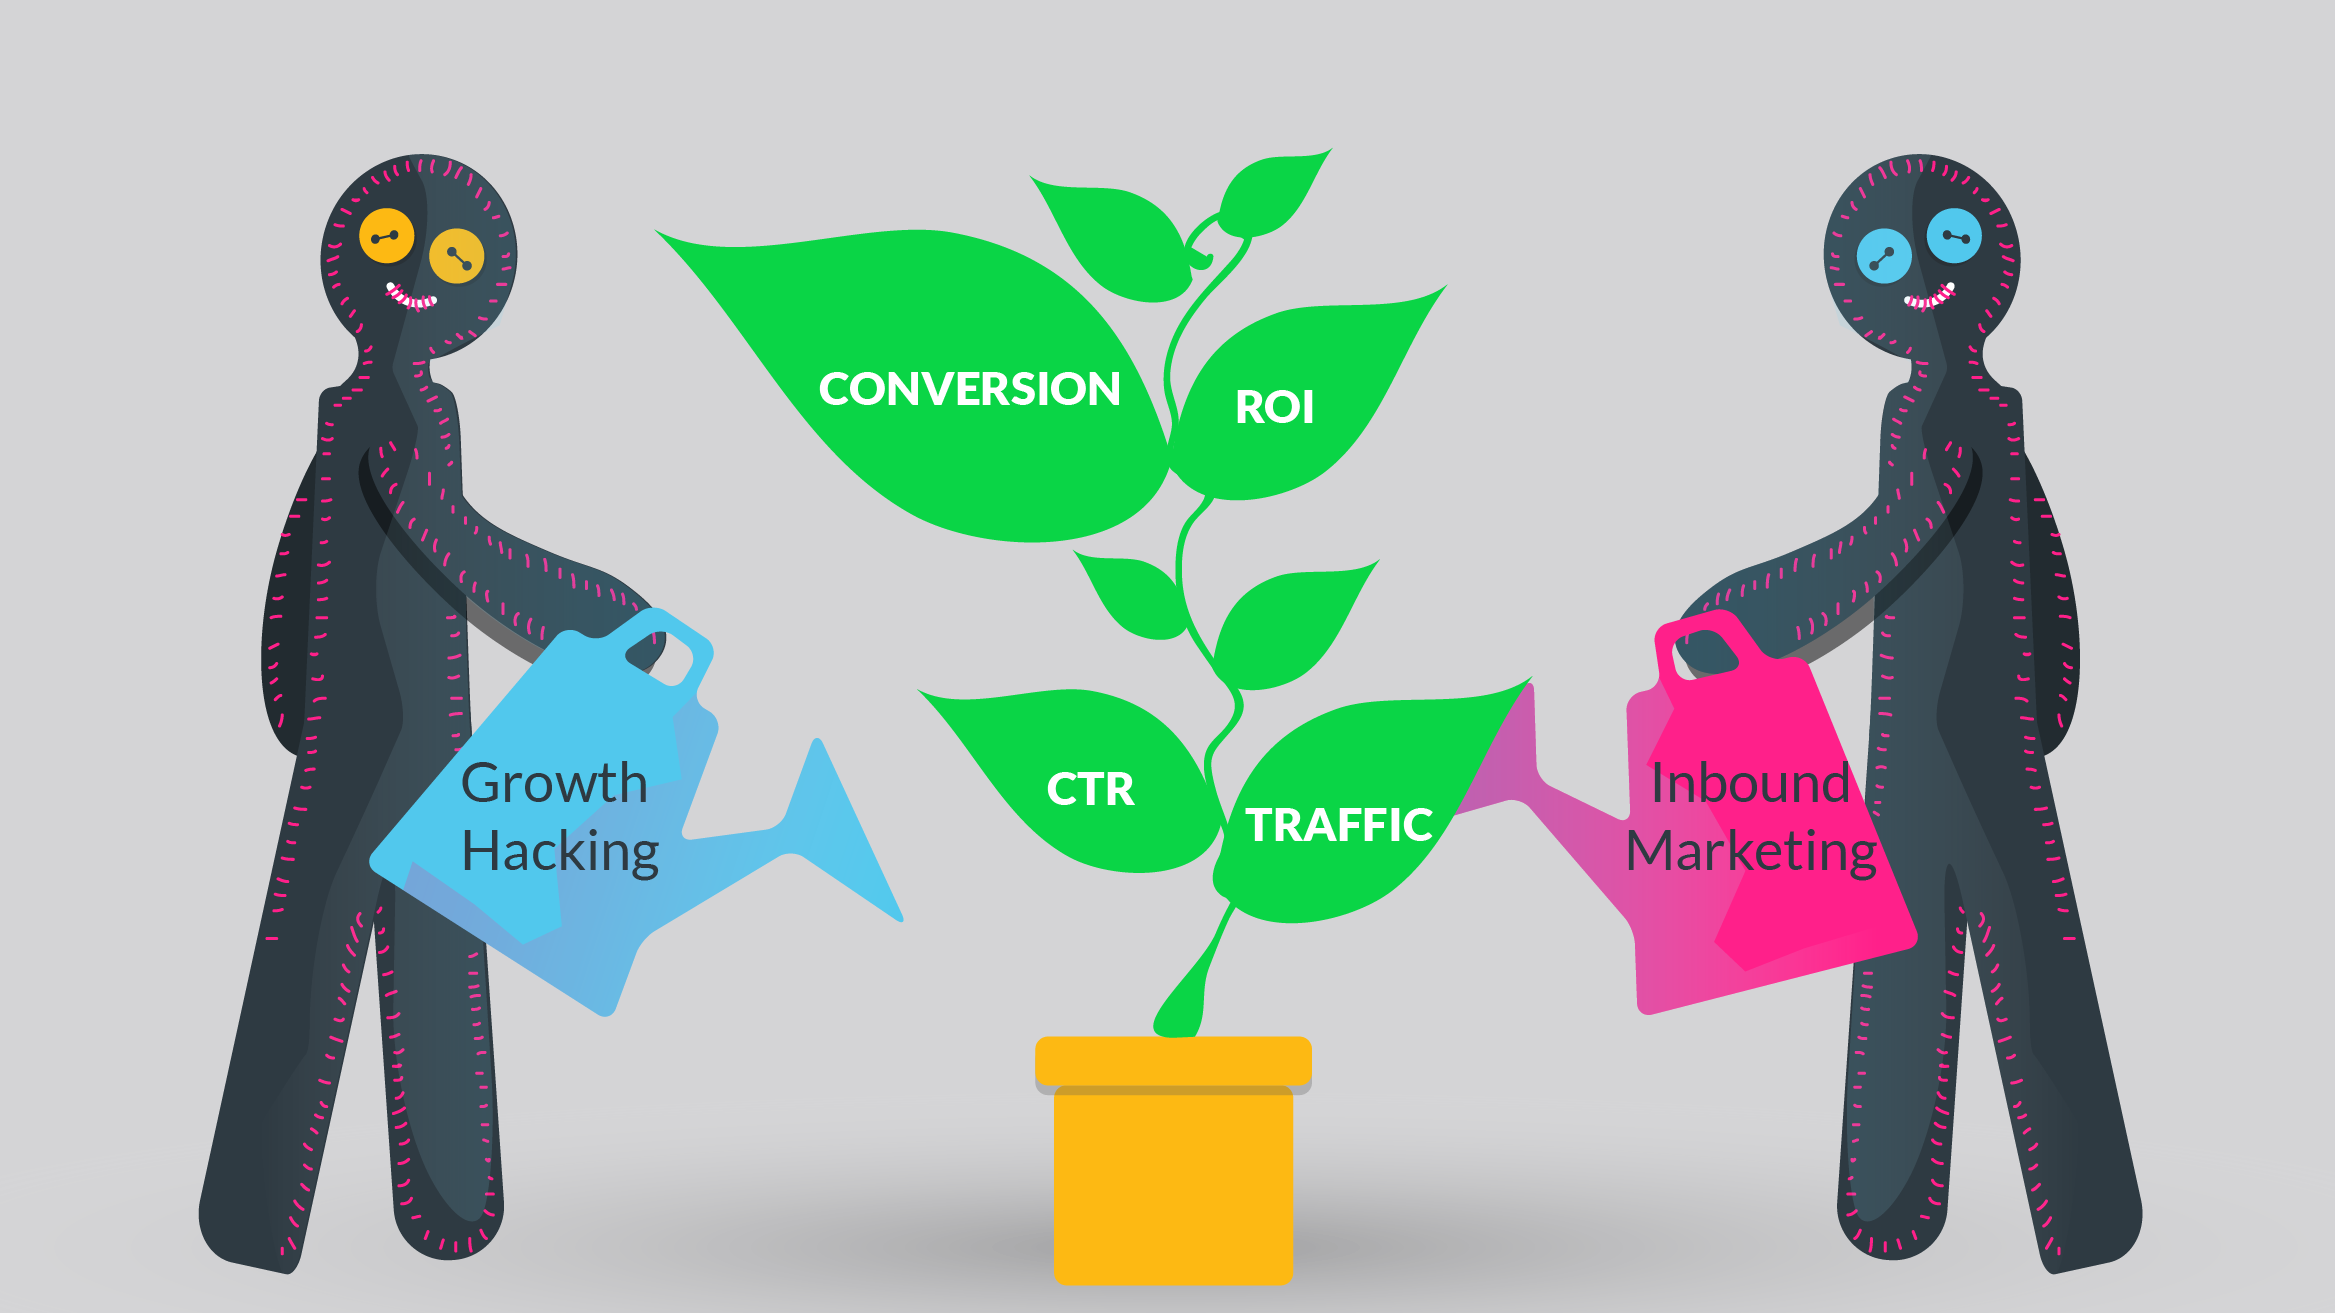 Inbound Marketing Vs. Growth Hacking; Choosing the Right Strategy